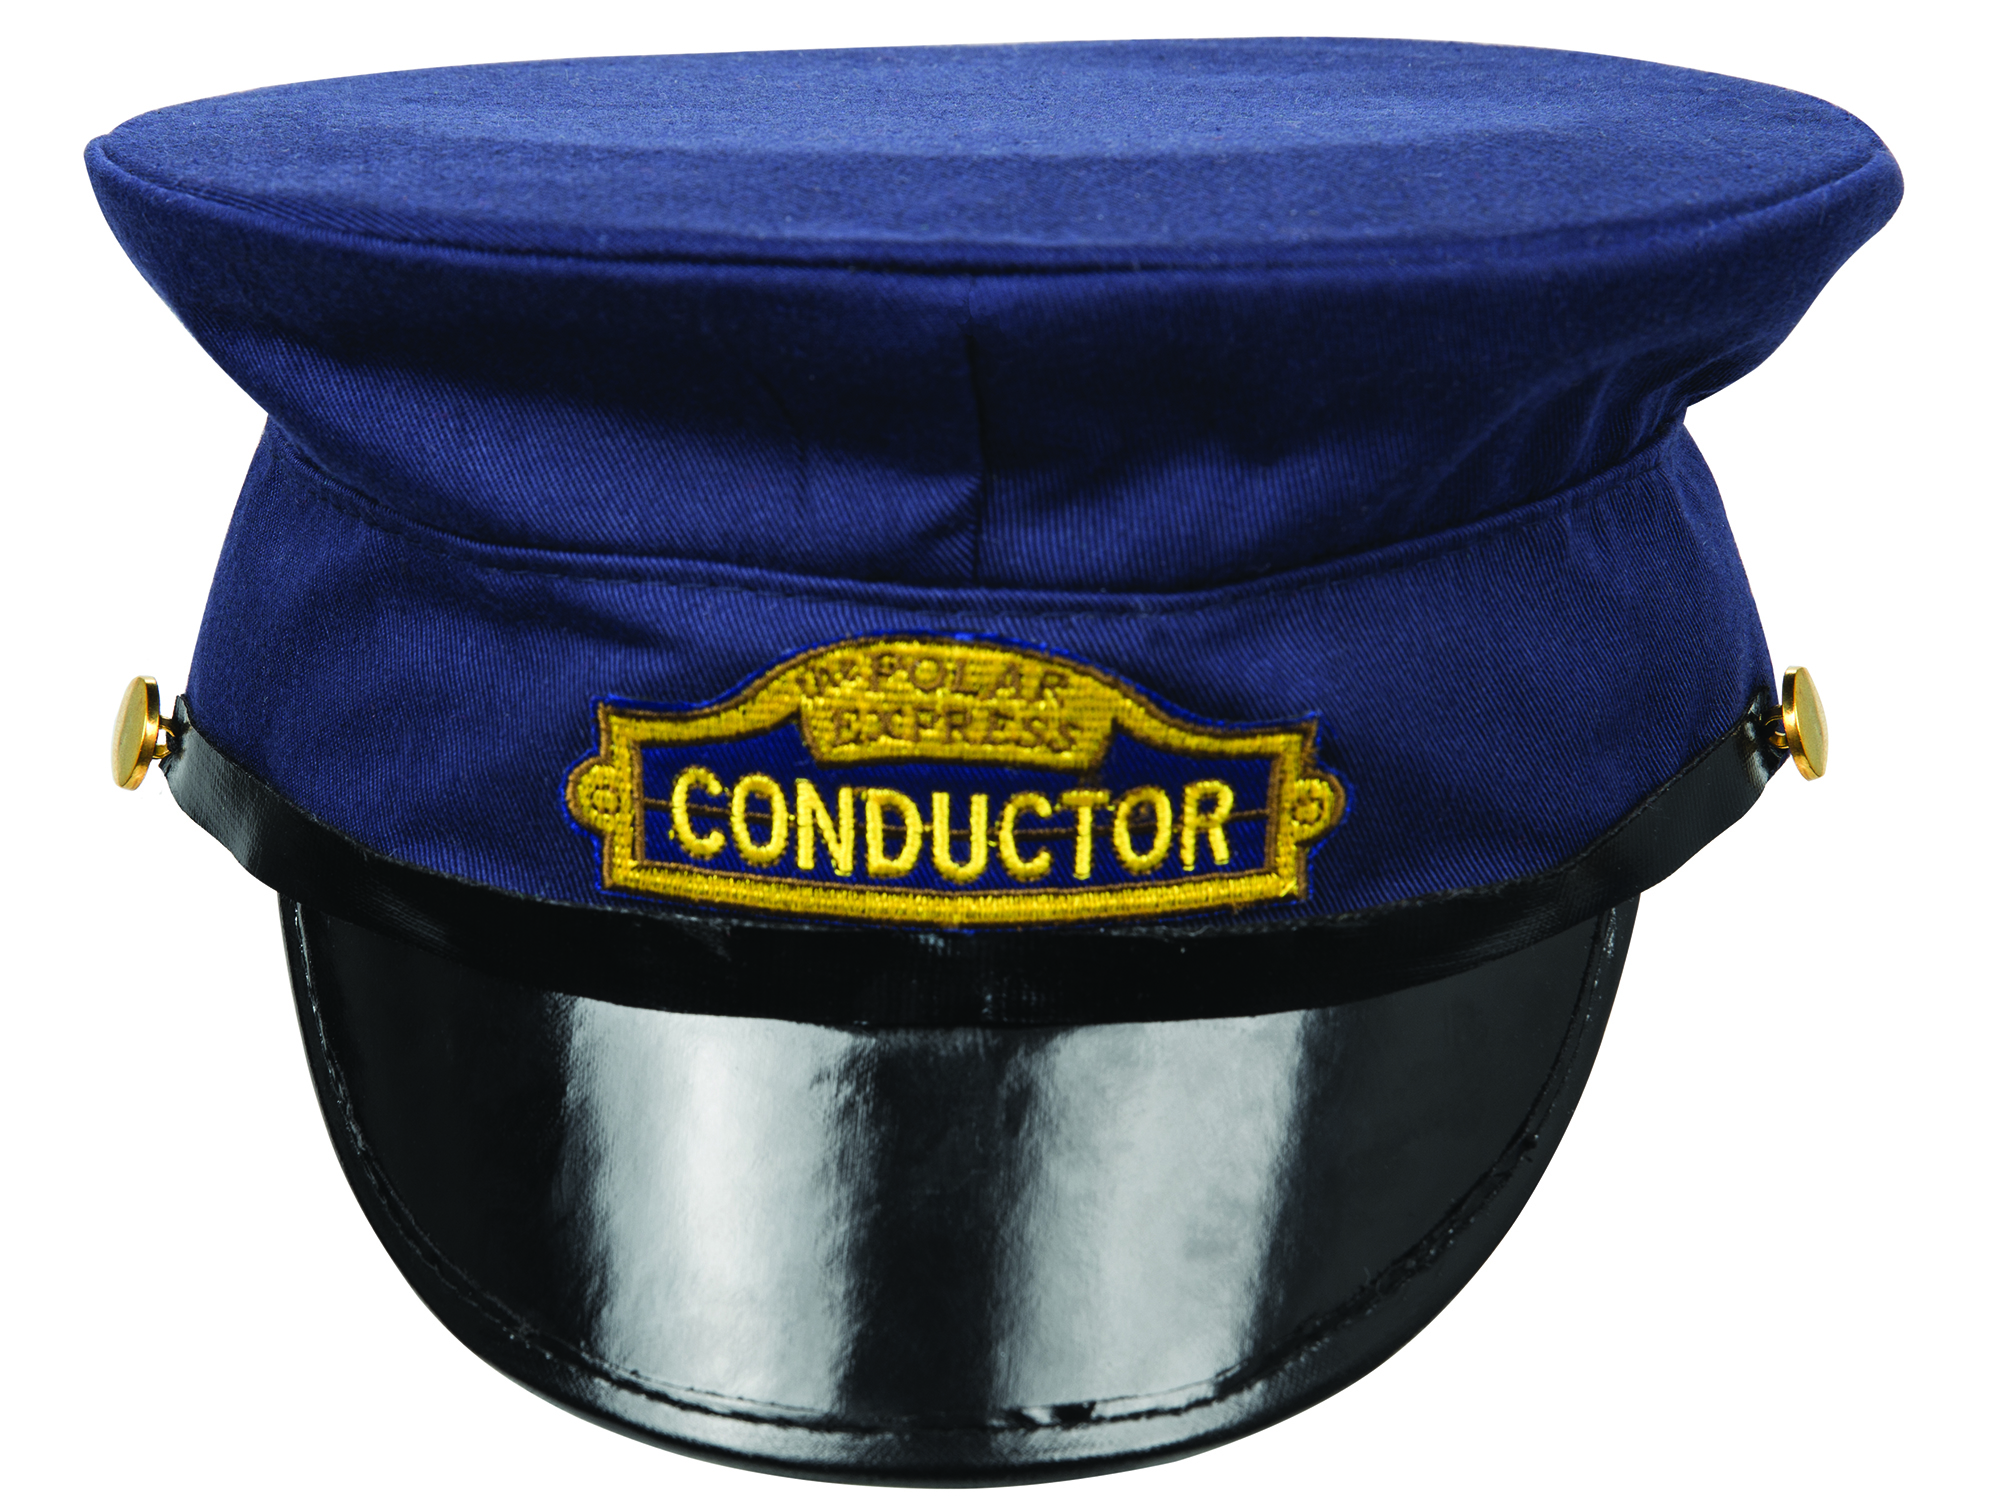 Lionel 1802050 Polar Express Conductor's Hat